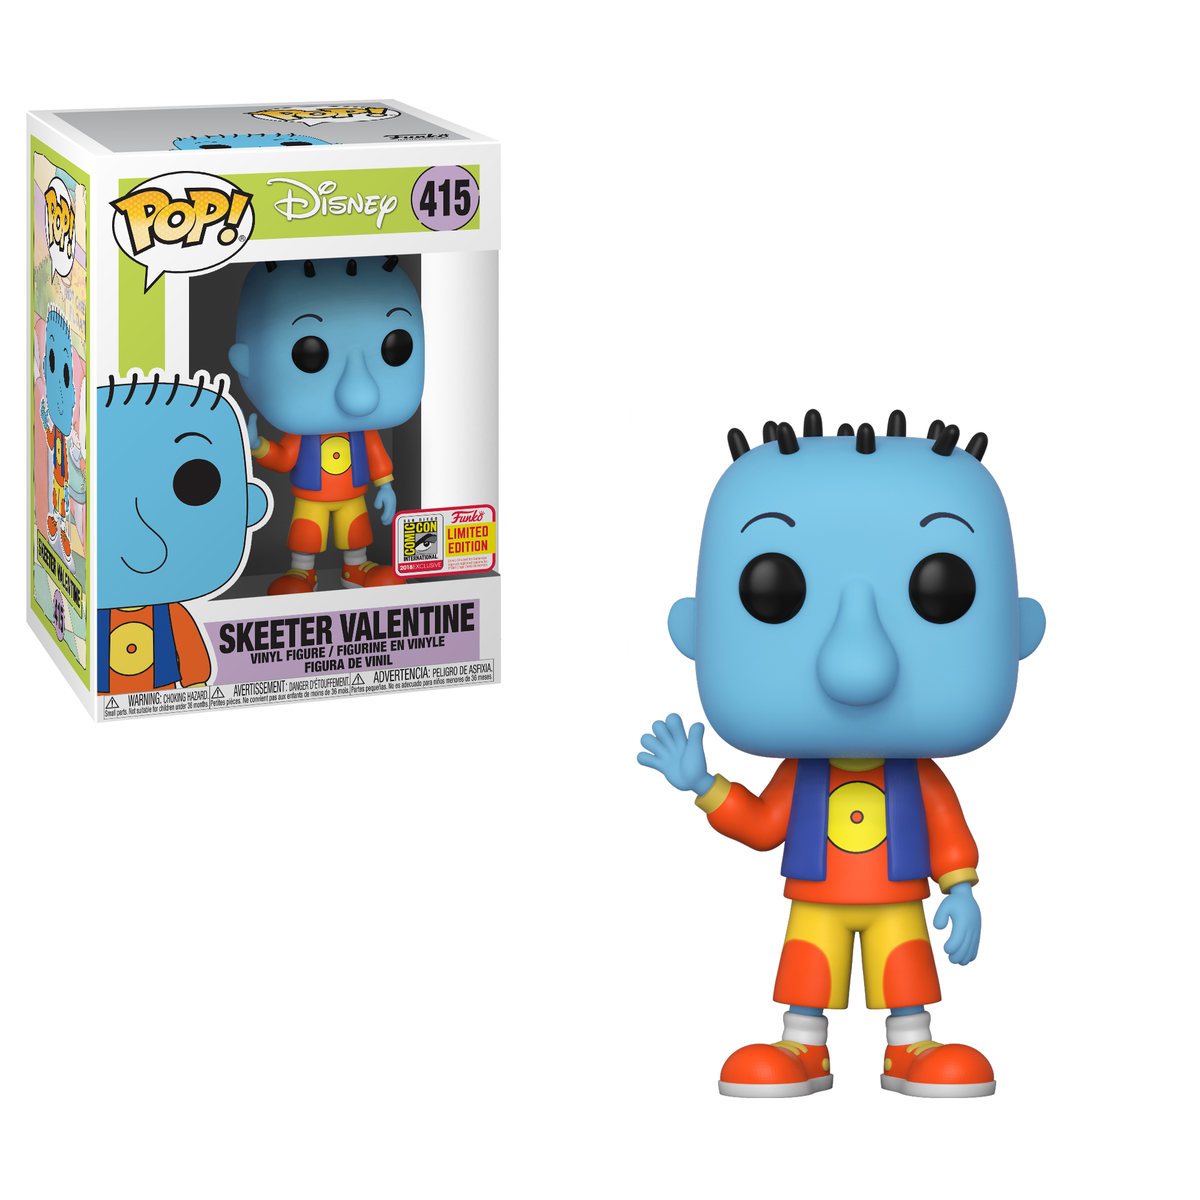 RT & follow @OriginalFunko for the chance to win an #SDCC 2018 exclusive Skeeter Valentine Pop! #FunkoSDCC